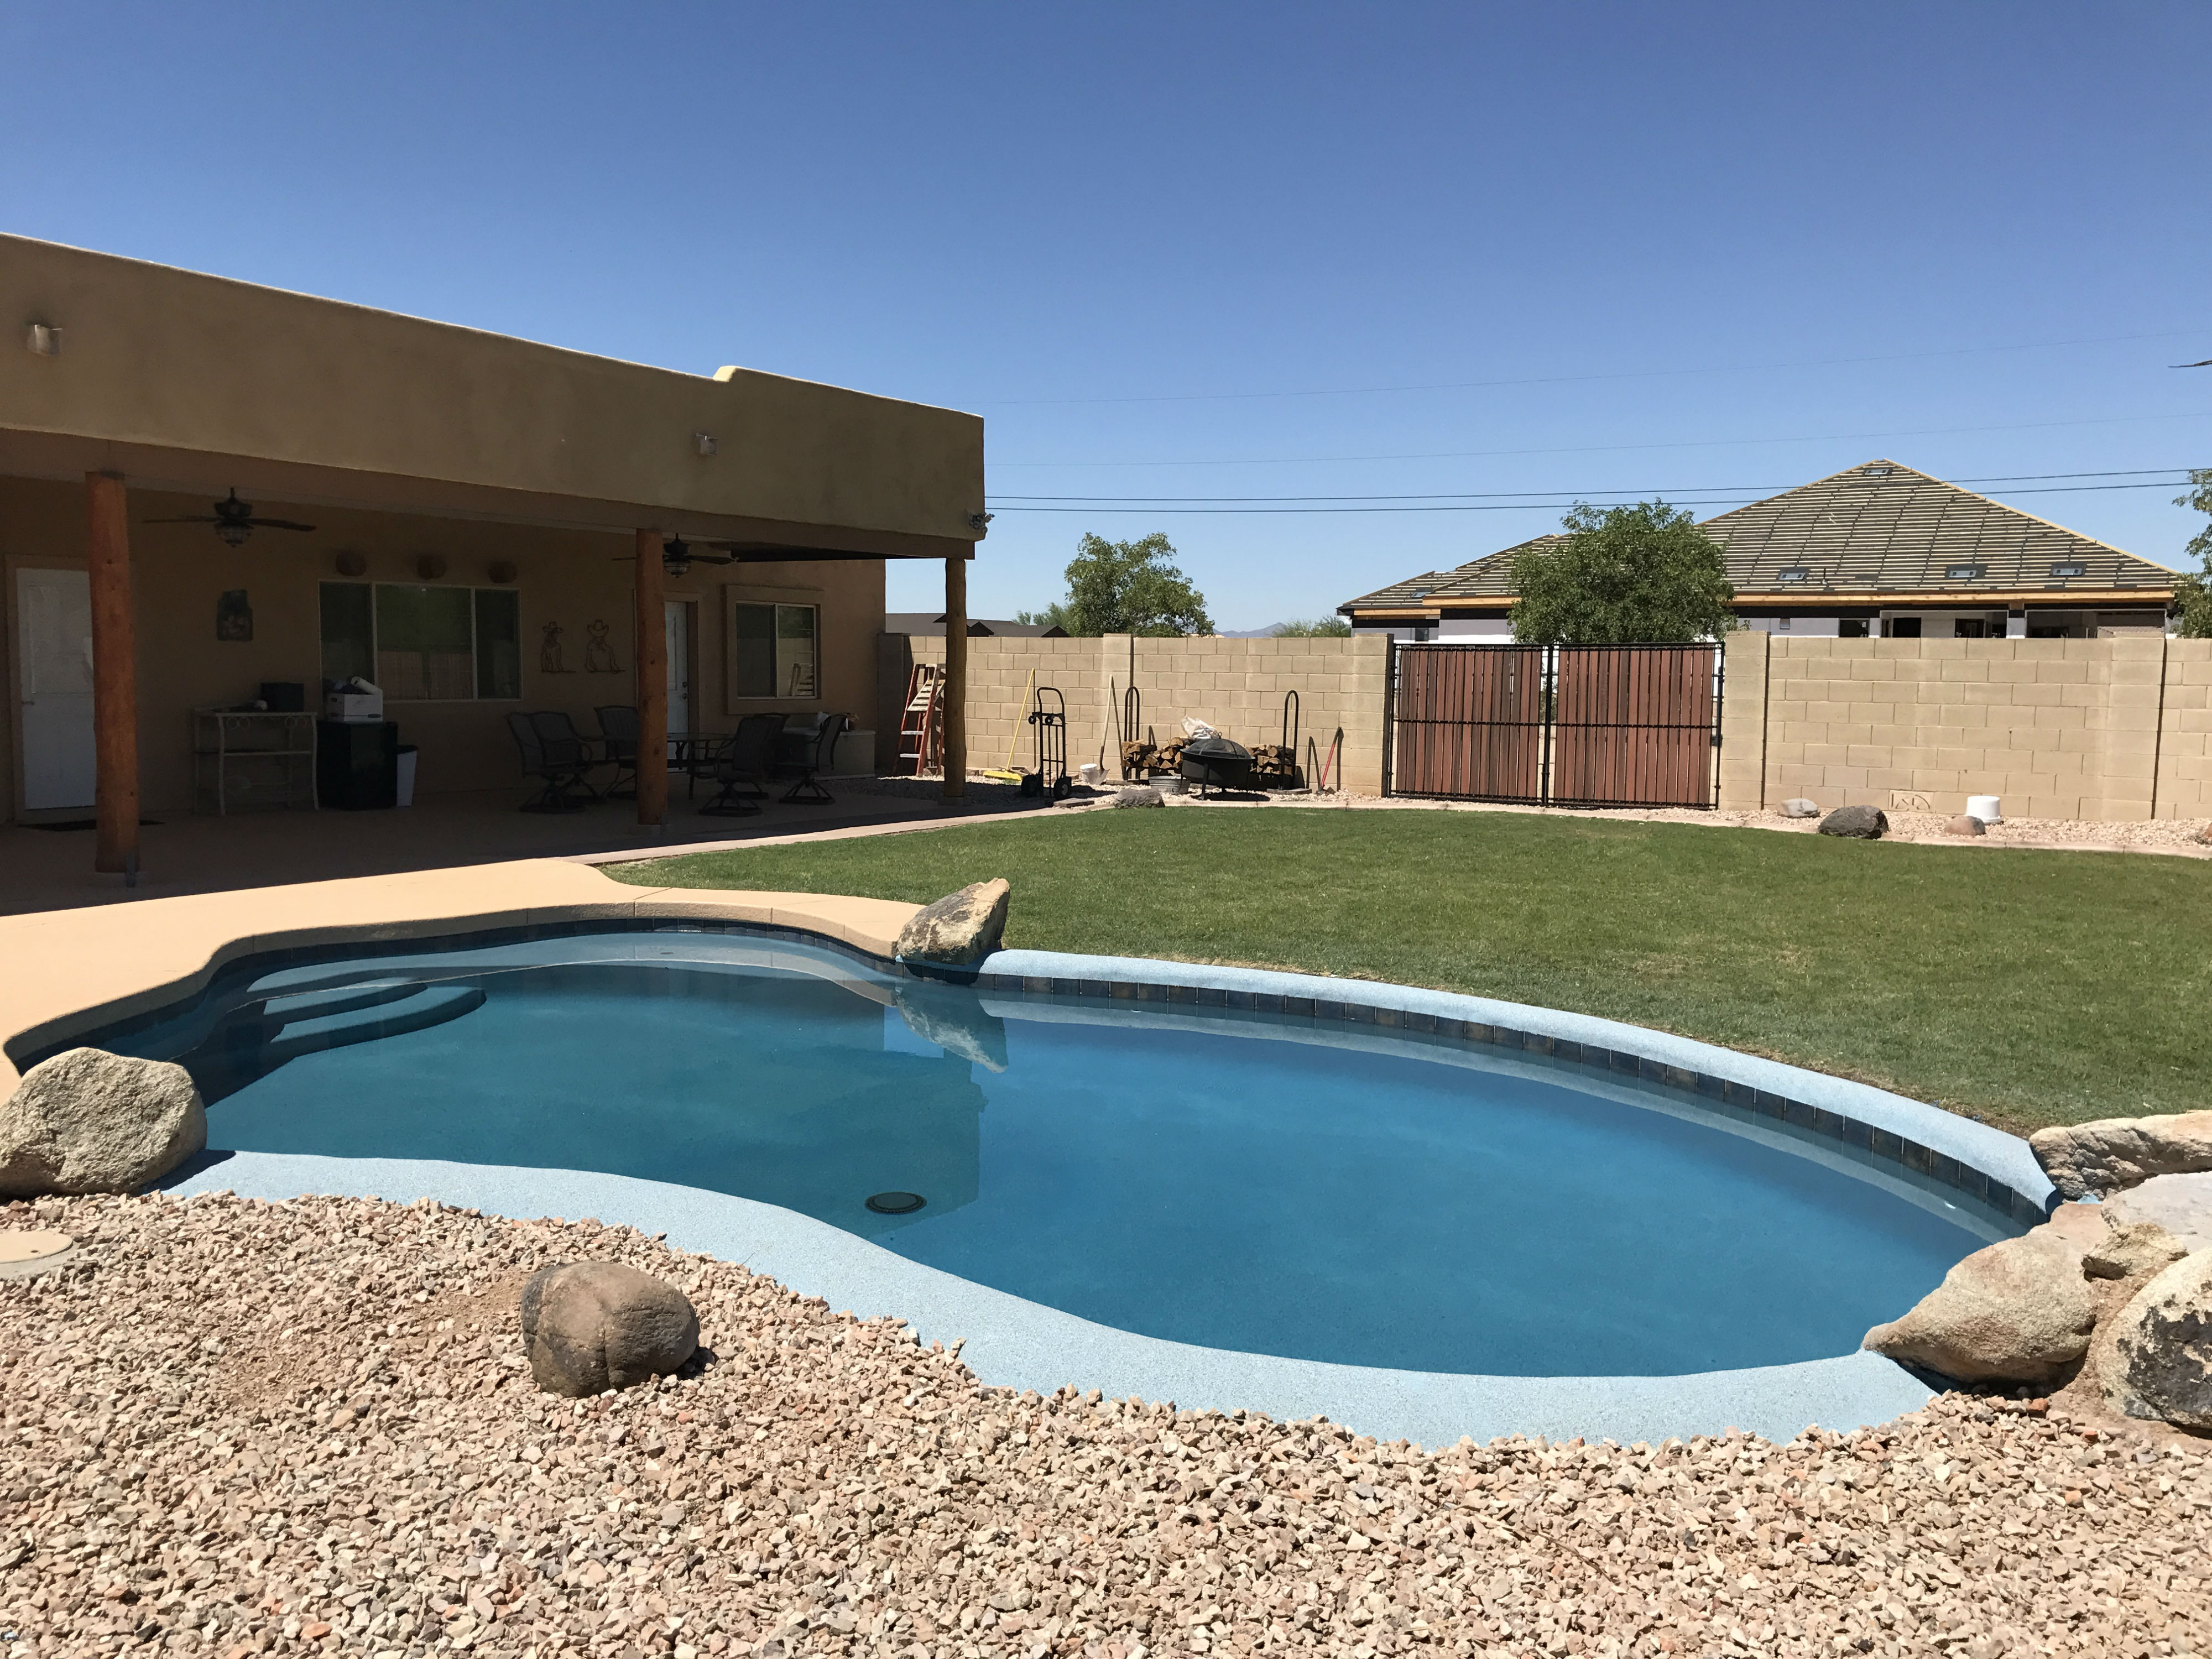 Pool Custom Build Arizona